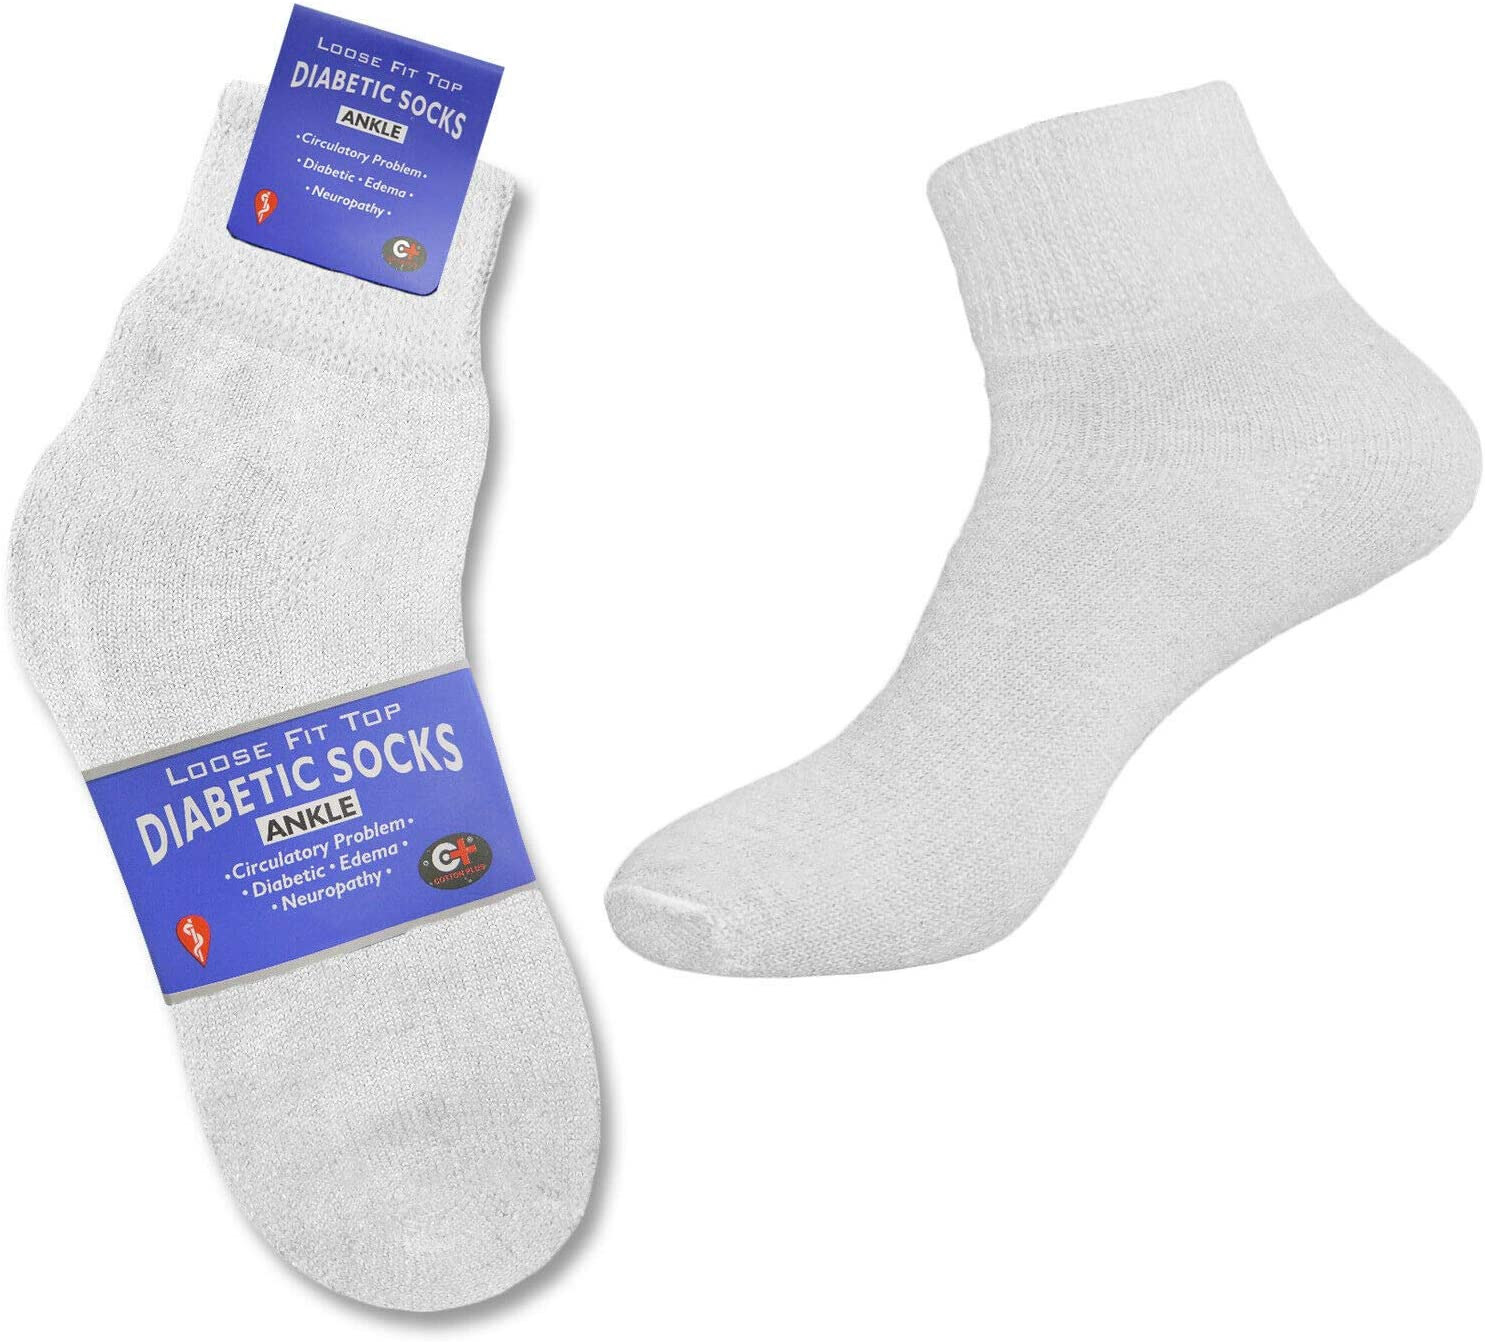 6 Pairs of Health Support Diabetic Opening large release sale Socks Circulatory Japan's largest assortment Ankle Non-